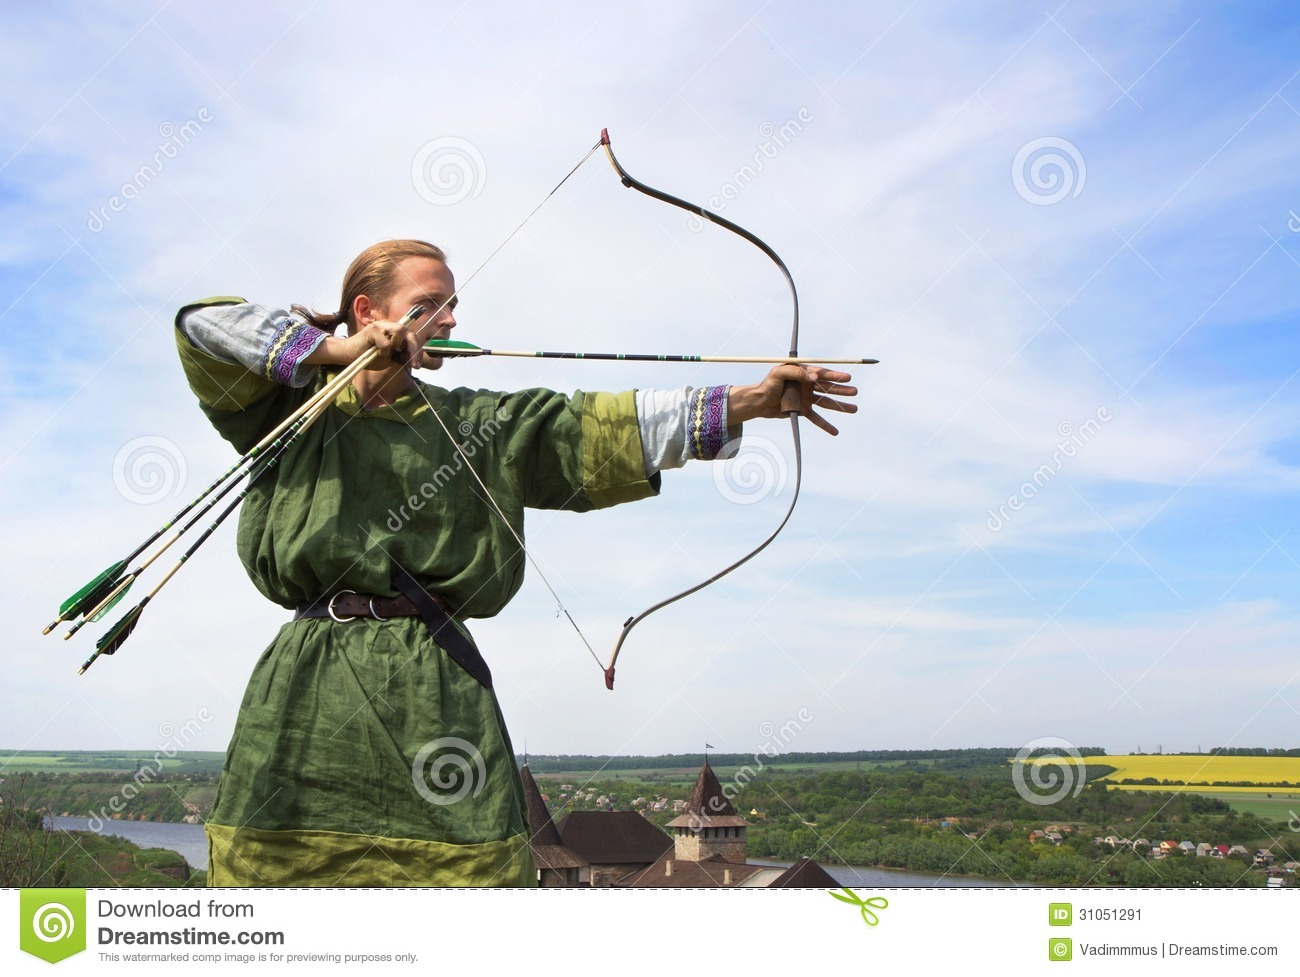 Young archer with bow and arrows in medieval costume aiming.